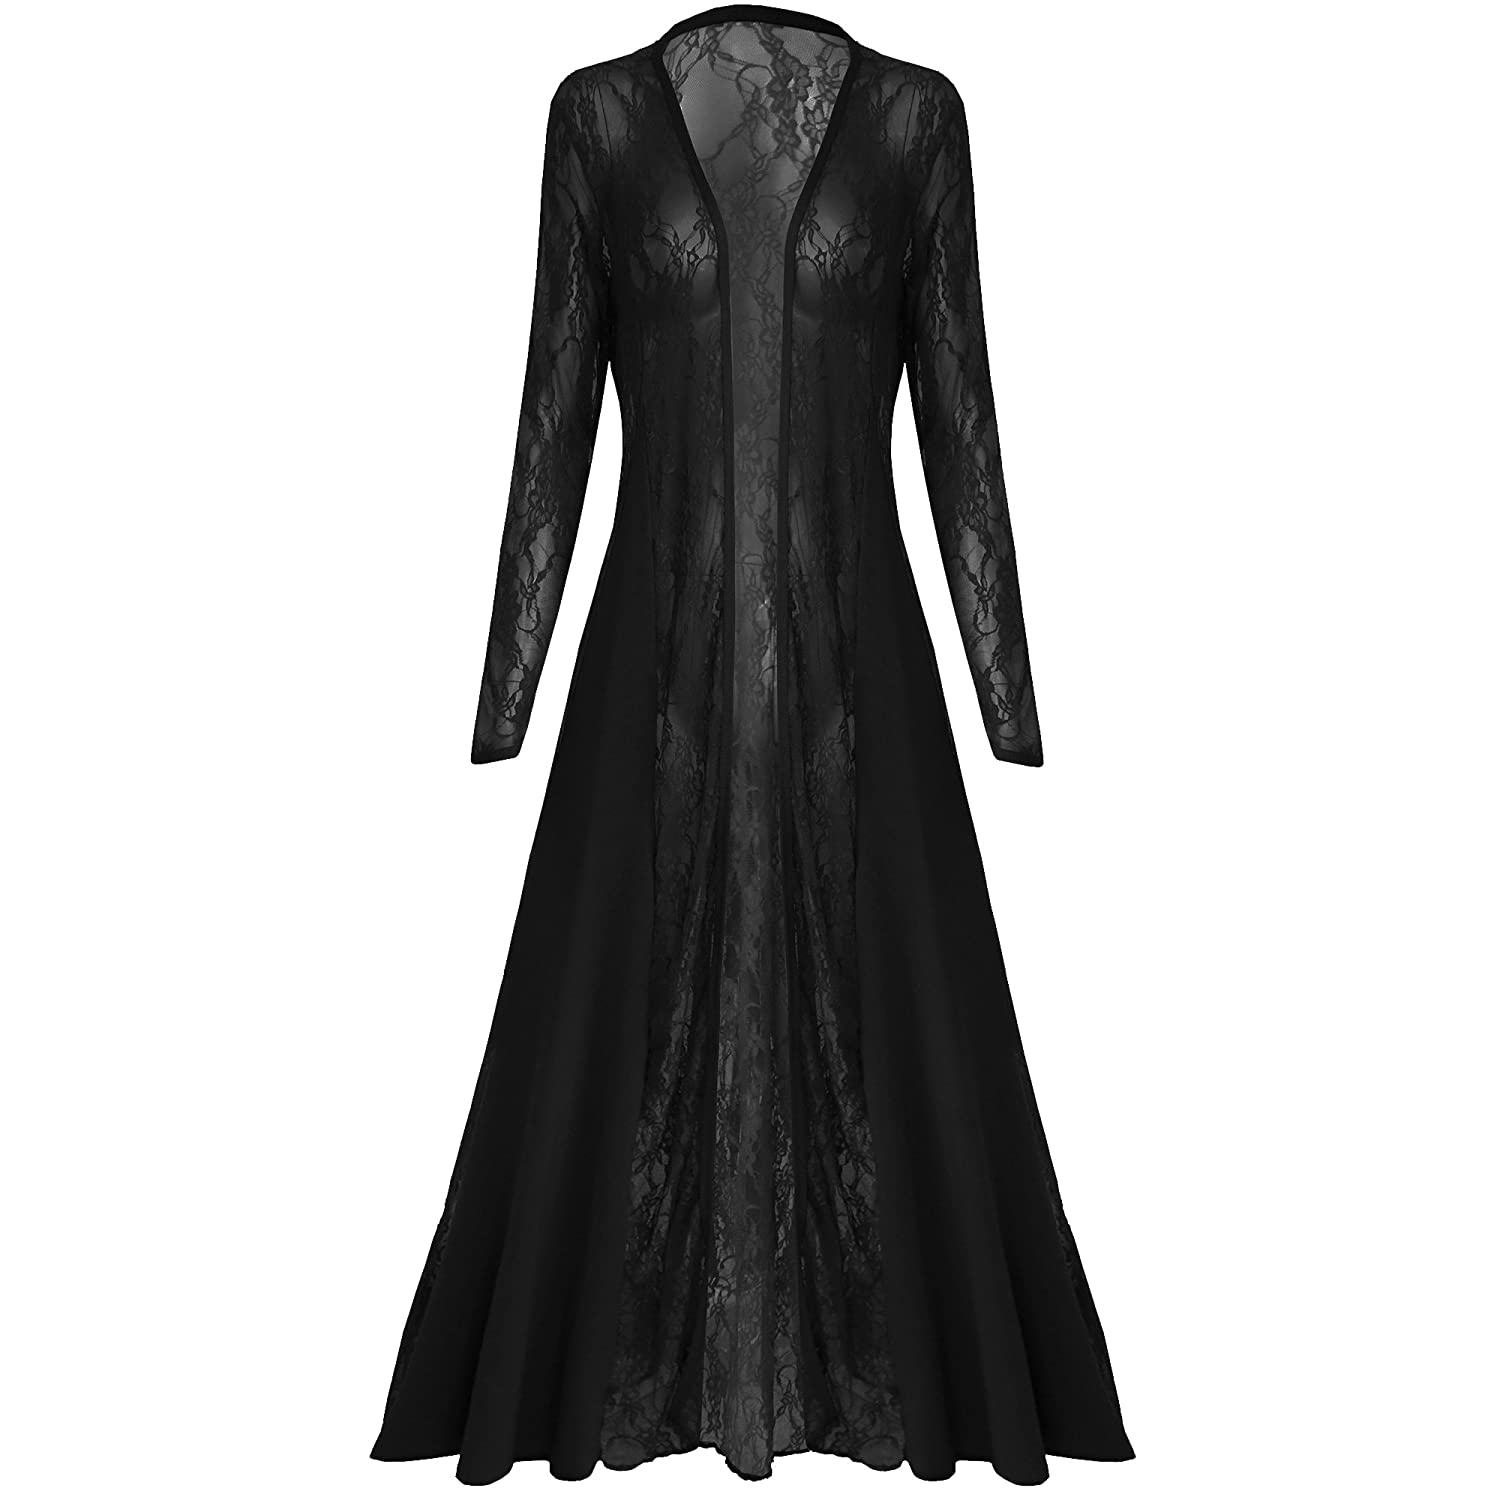 Steampunk Jacket | Steampunk Coat, Overcoat, Cape Womens Ladies Long Sleeves Lace Mesh Panels Floaty Maxi Midi Cardigan Jacket Top £19.44 AT vintagedancer.com